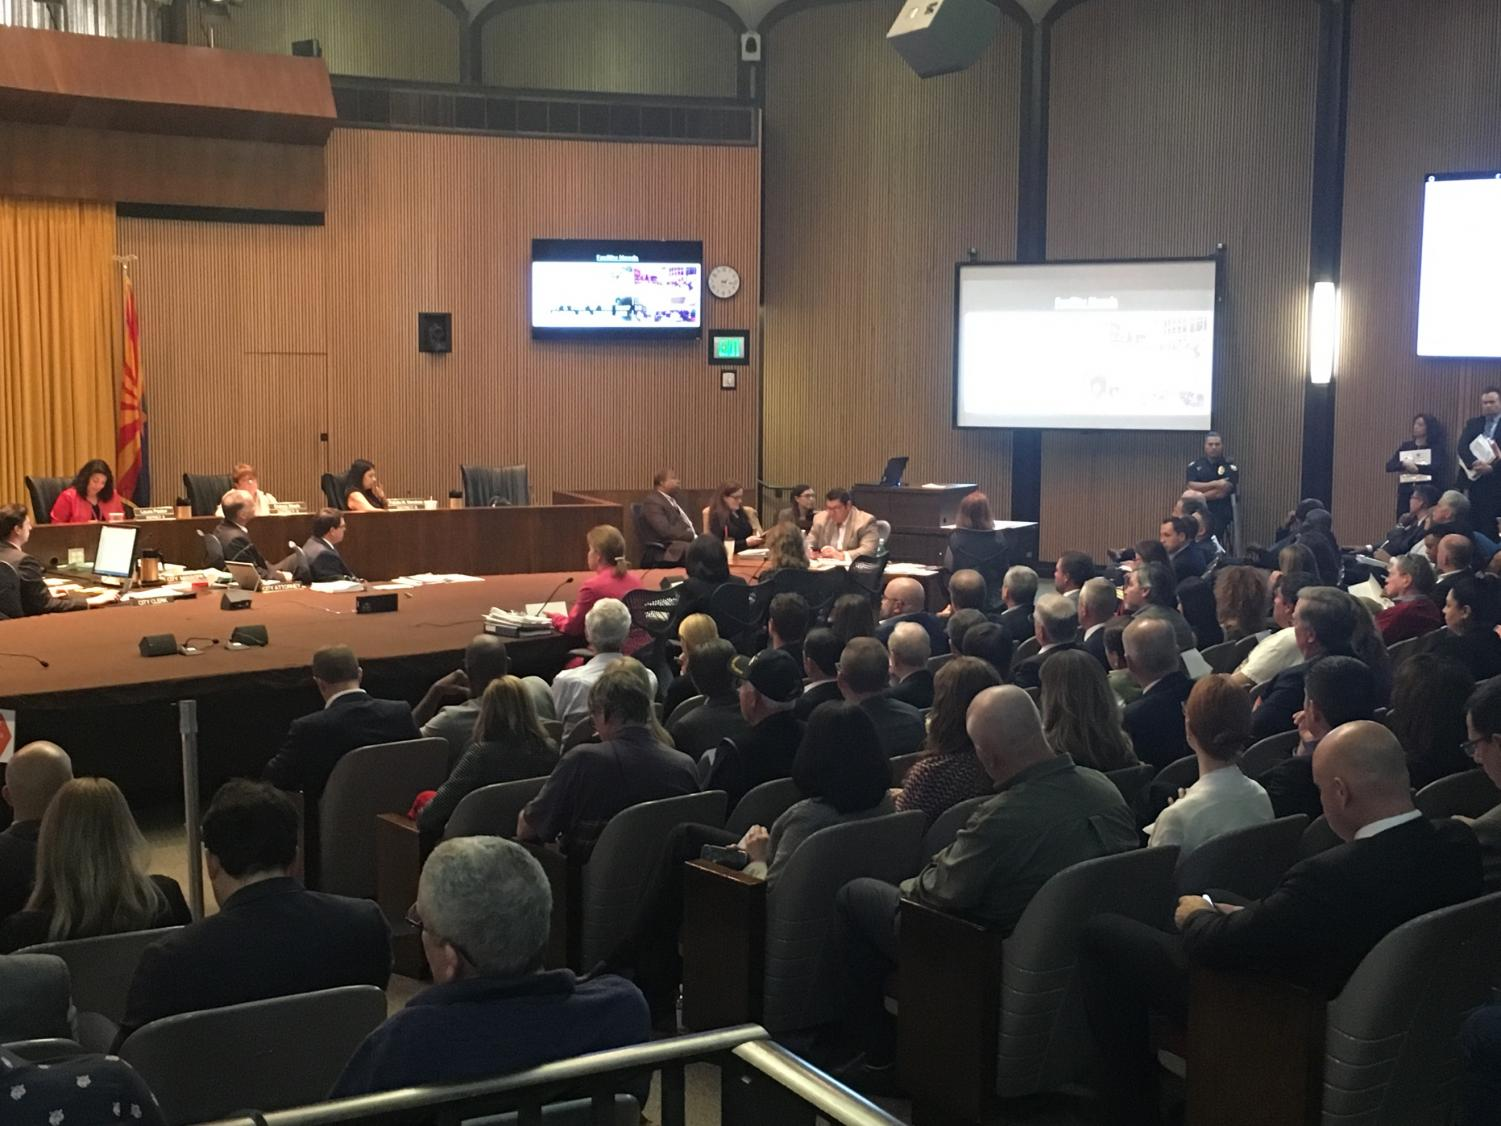 Phoenix City Council summarizes business and fiscal initiatives to renovation in public meeting as well as other proposed incentives.